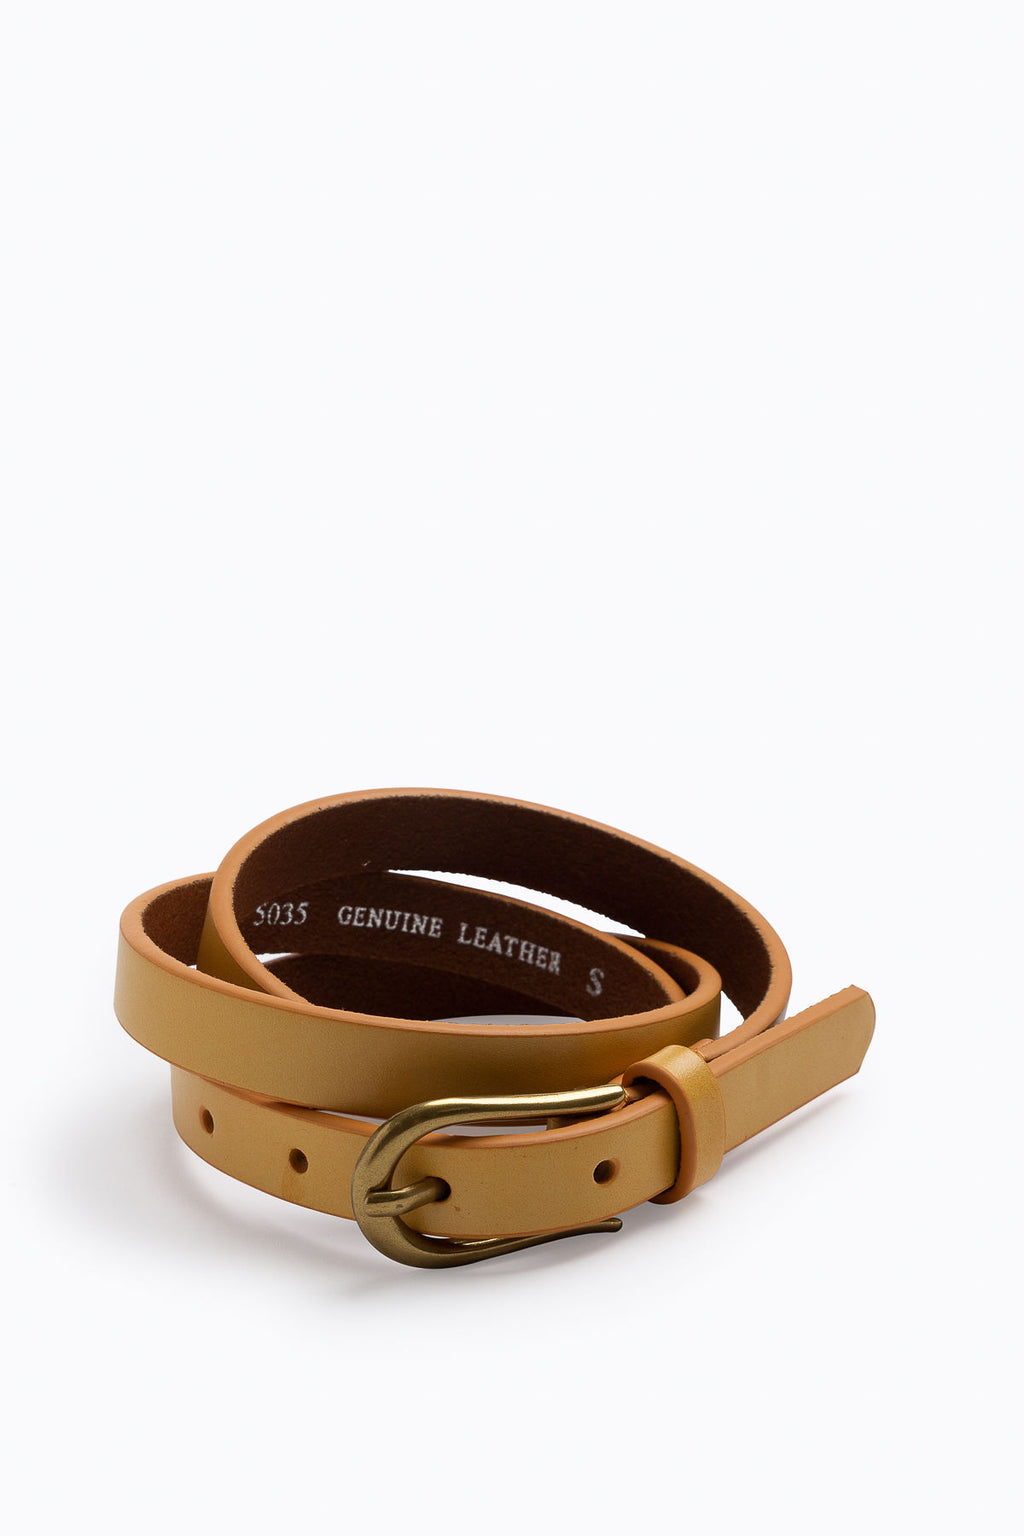 Basic Skinny Belt with Simple Buckle in Camel